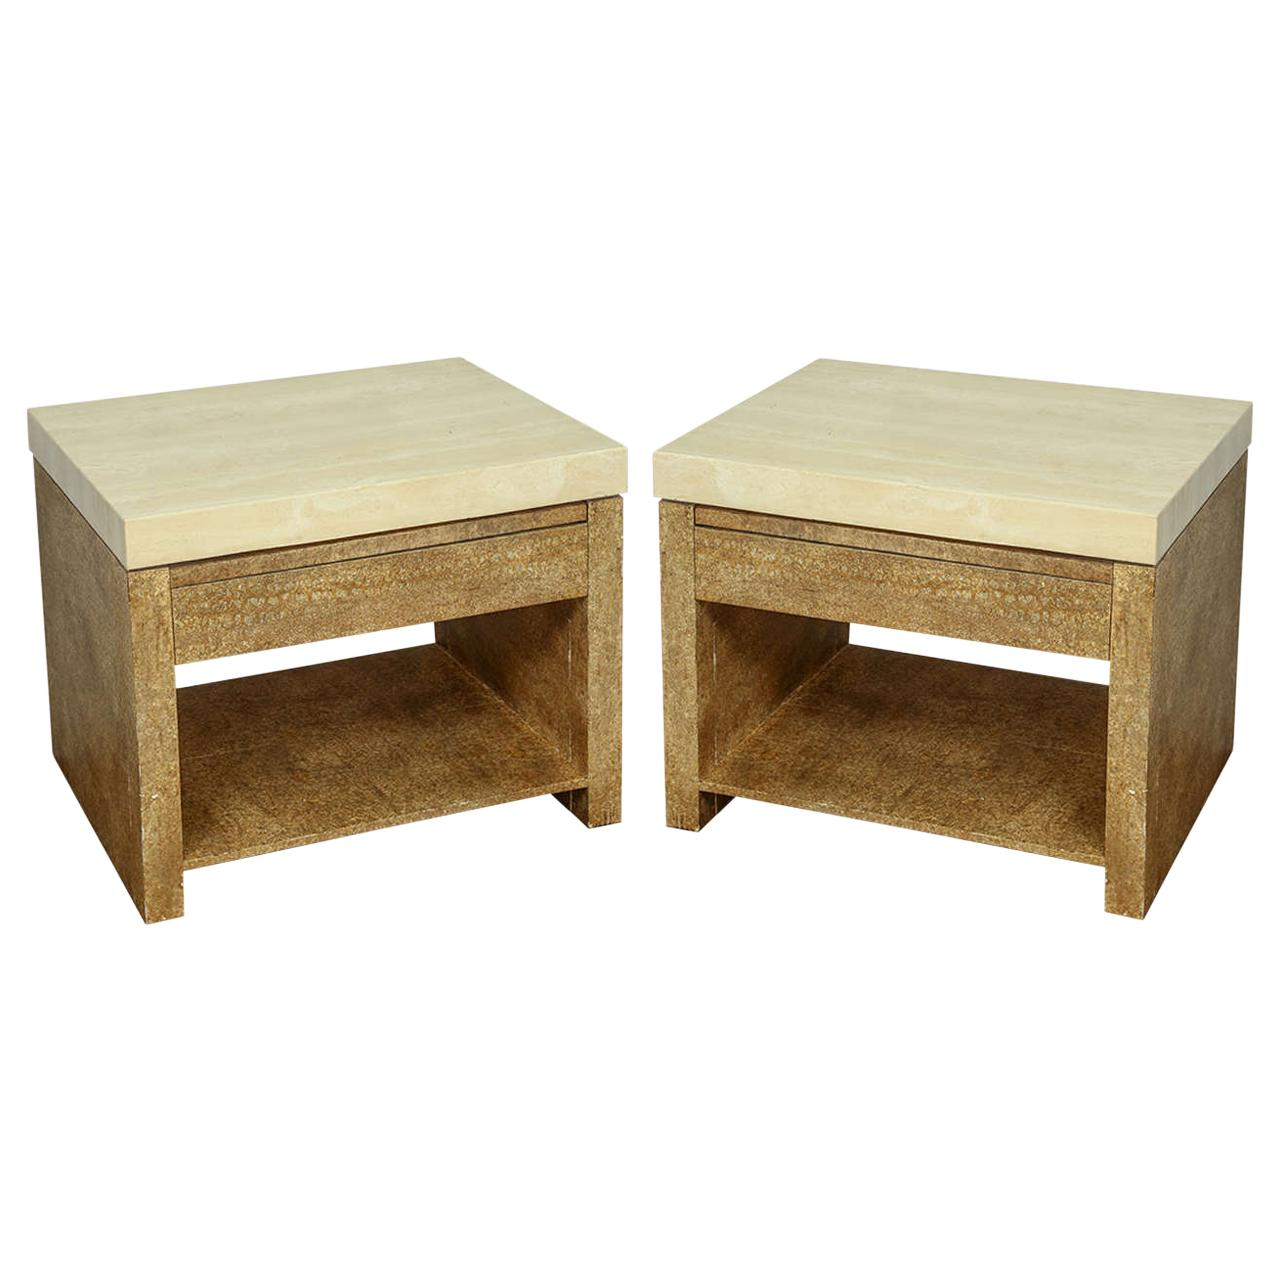 Pair of Wood and Travertine End Tables